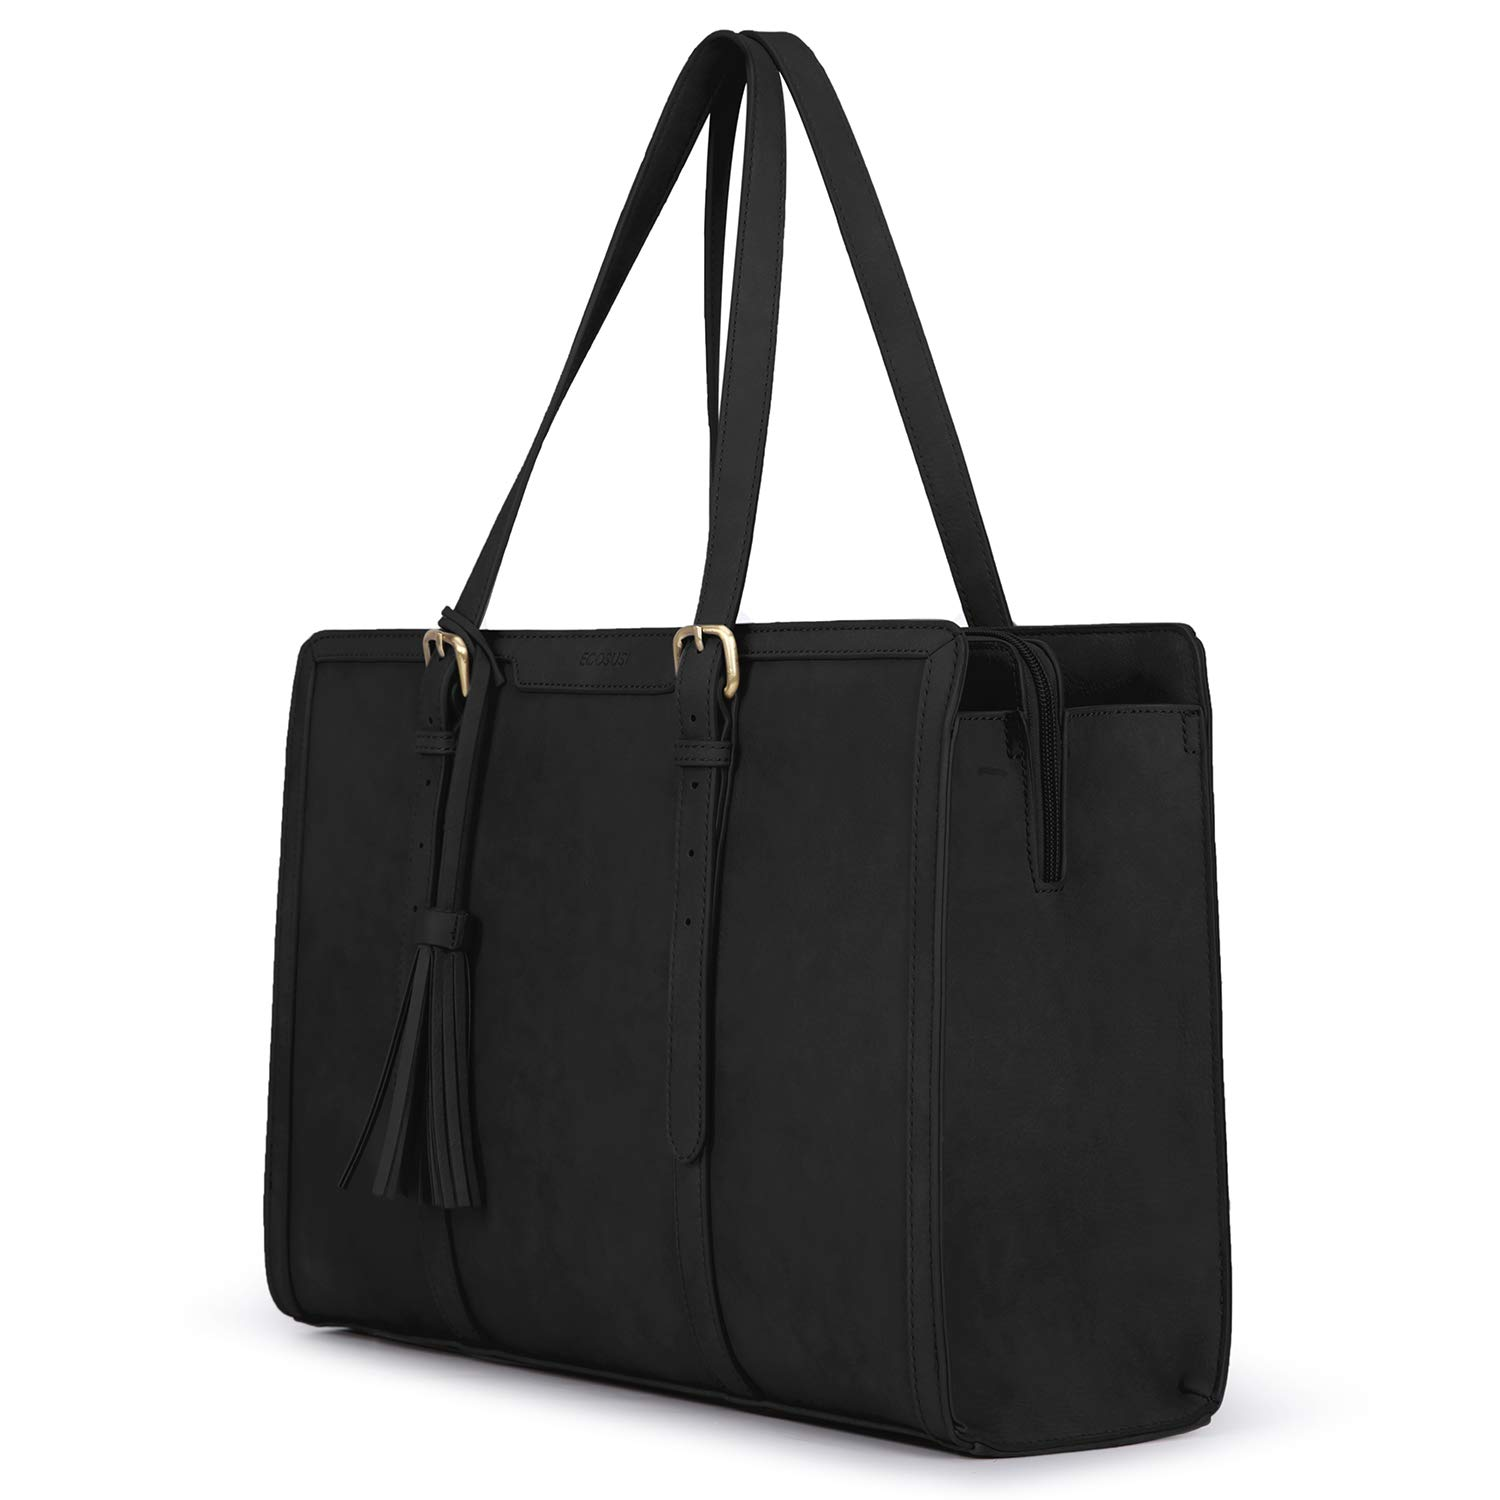 ECOSUSI Laptop Tote Bag for Women Fits Up to 15.6 Inch PU Leather Briefcase Office Handbags Large Capacity with 3 Divided Compartments by ECOSUSI